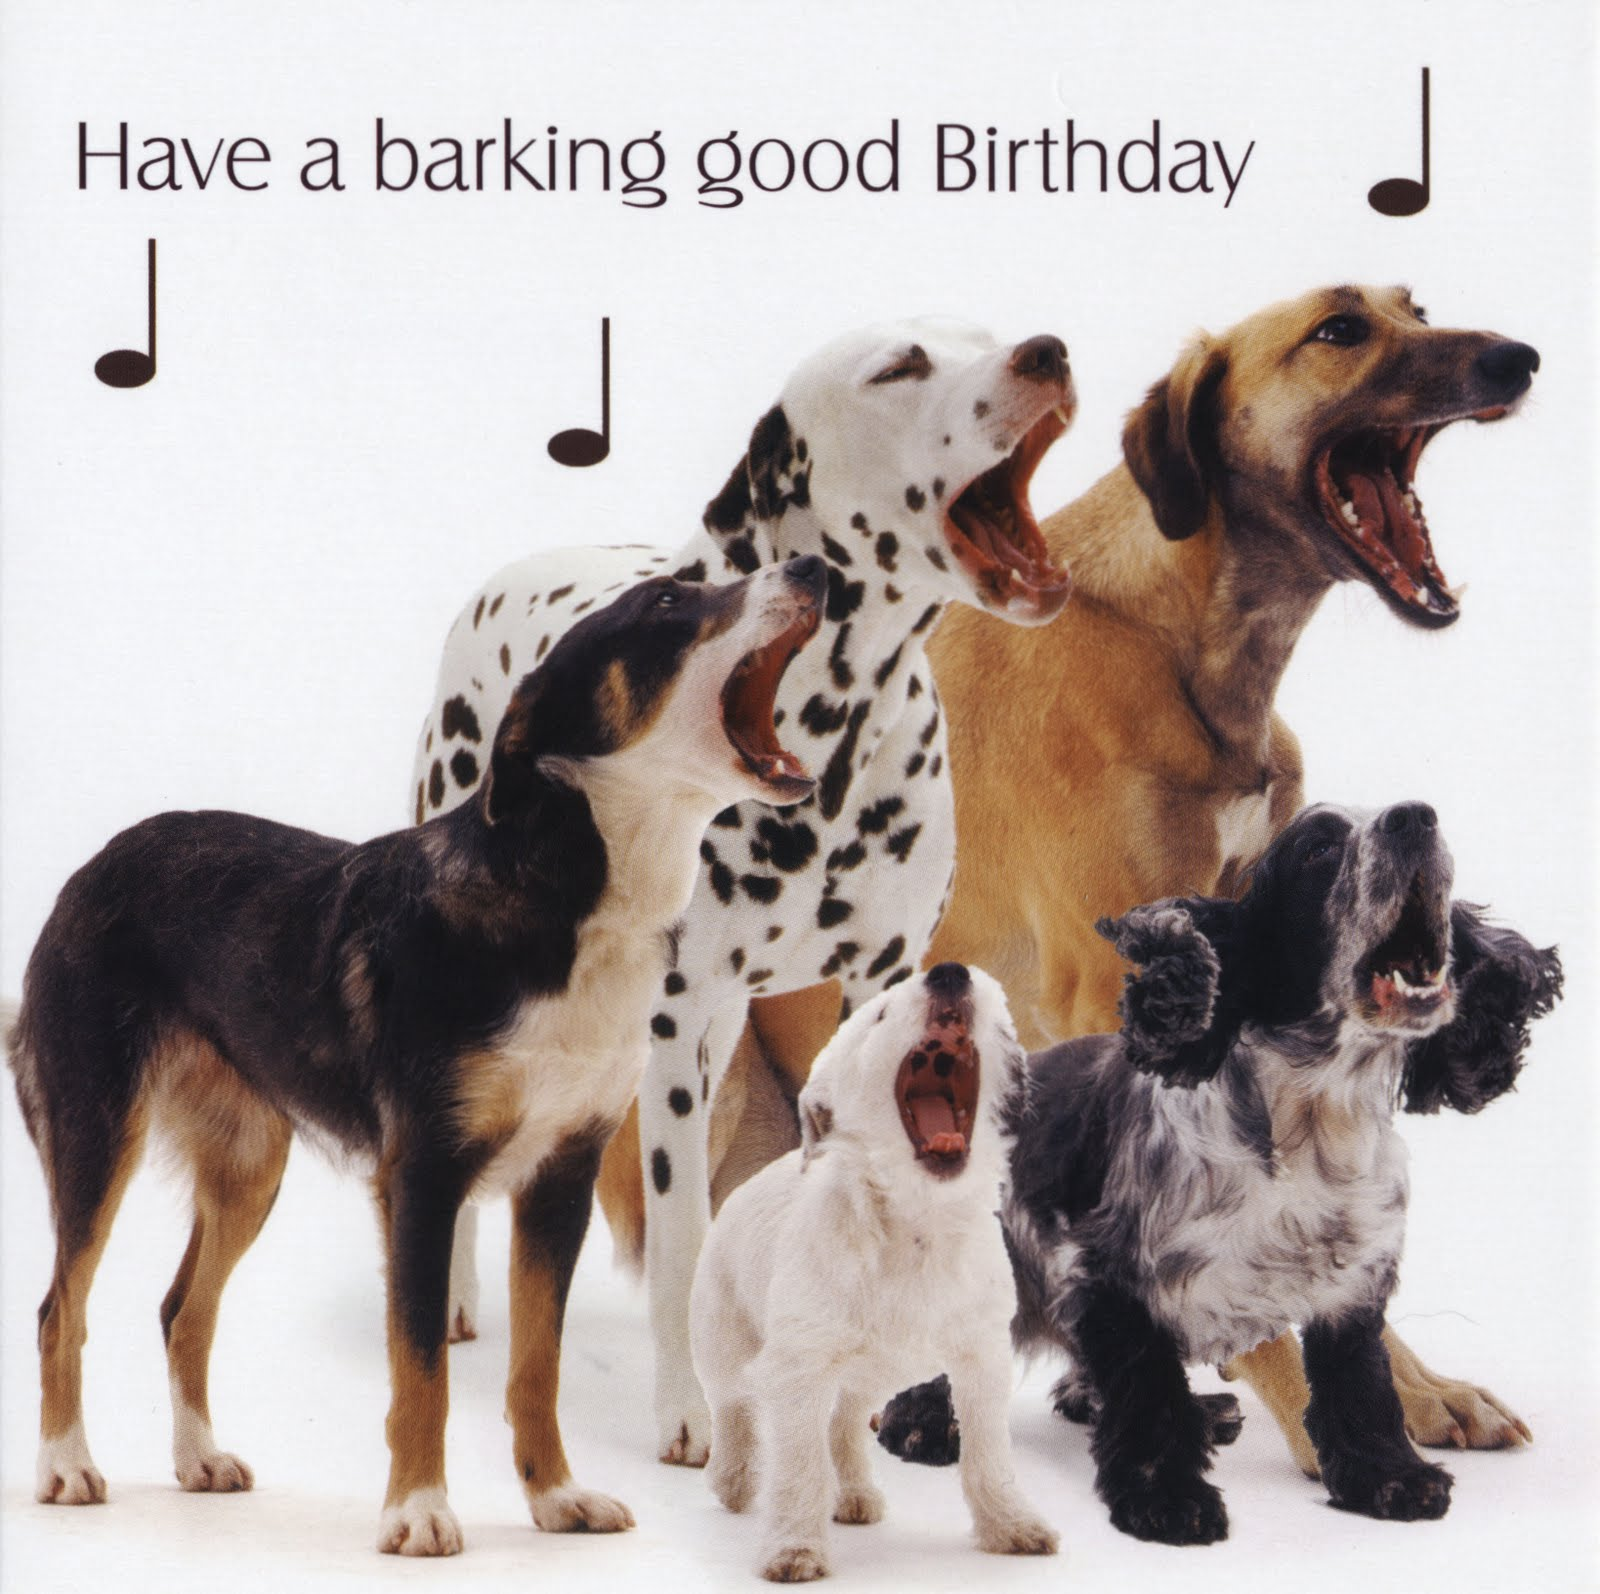 BarkingGoodBirthday